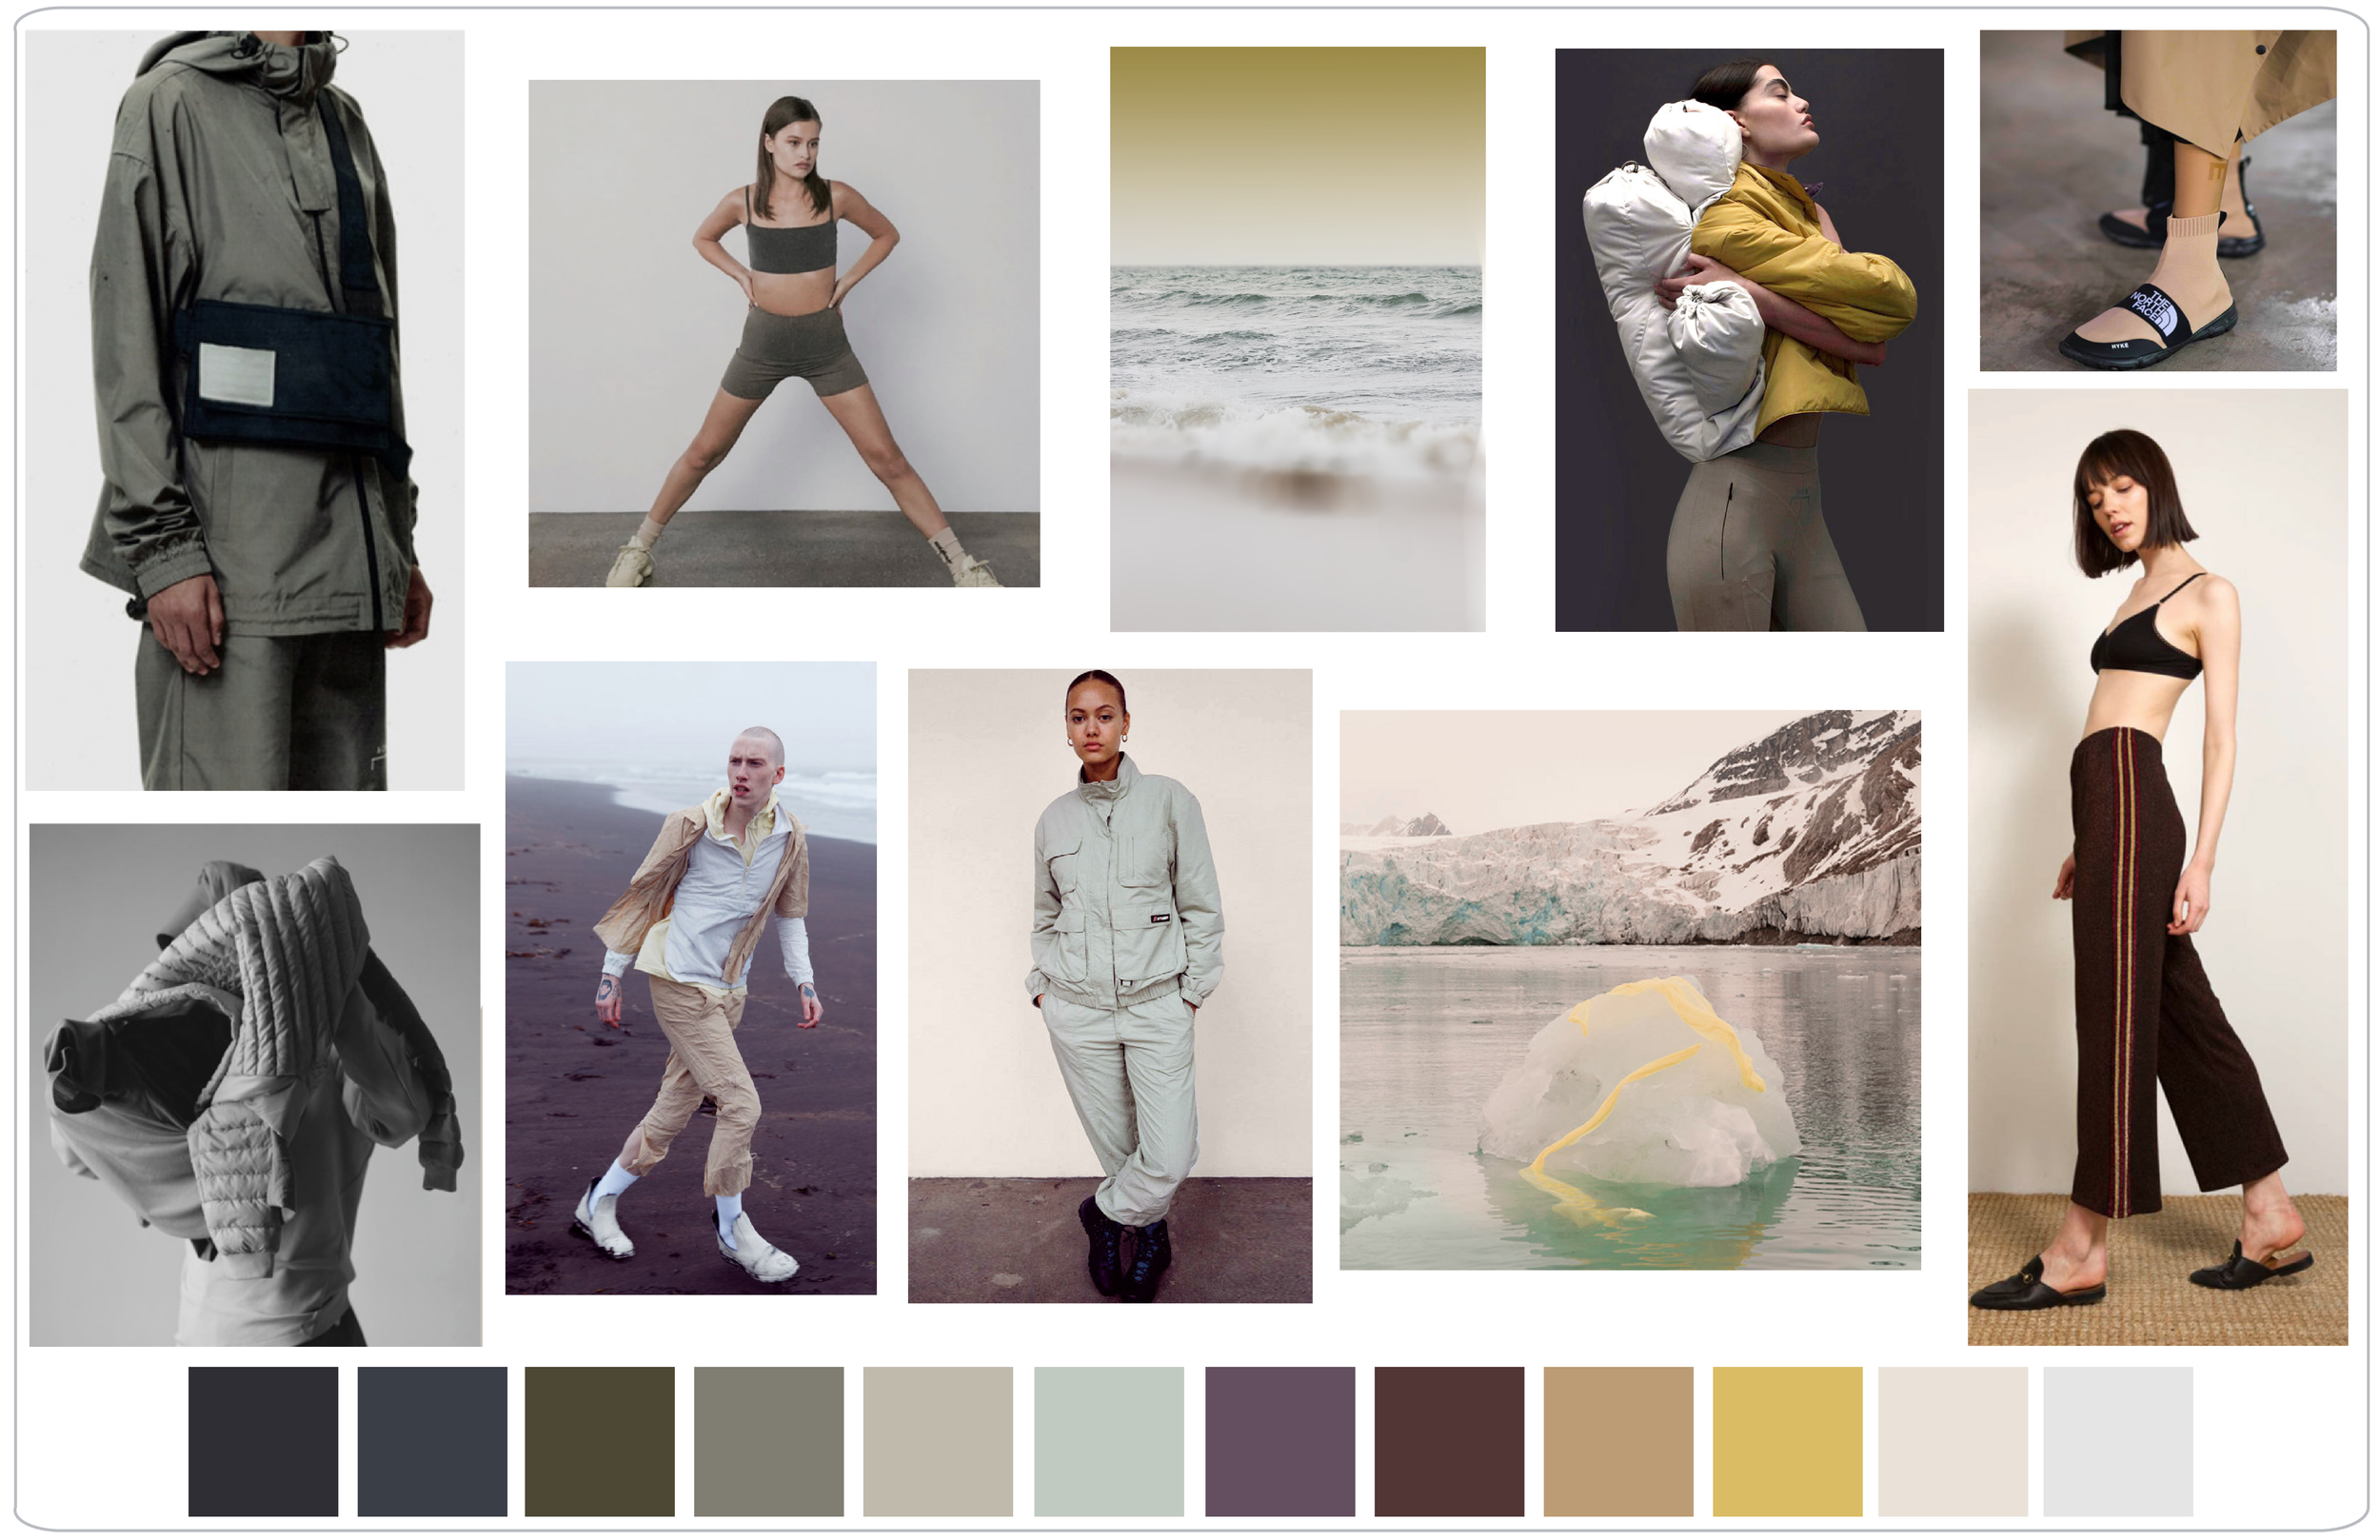 fall2020_color reasearch-01.png